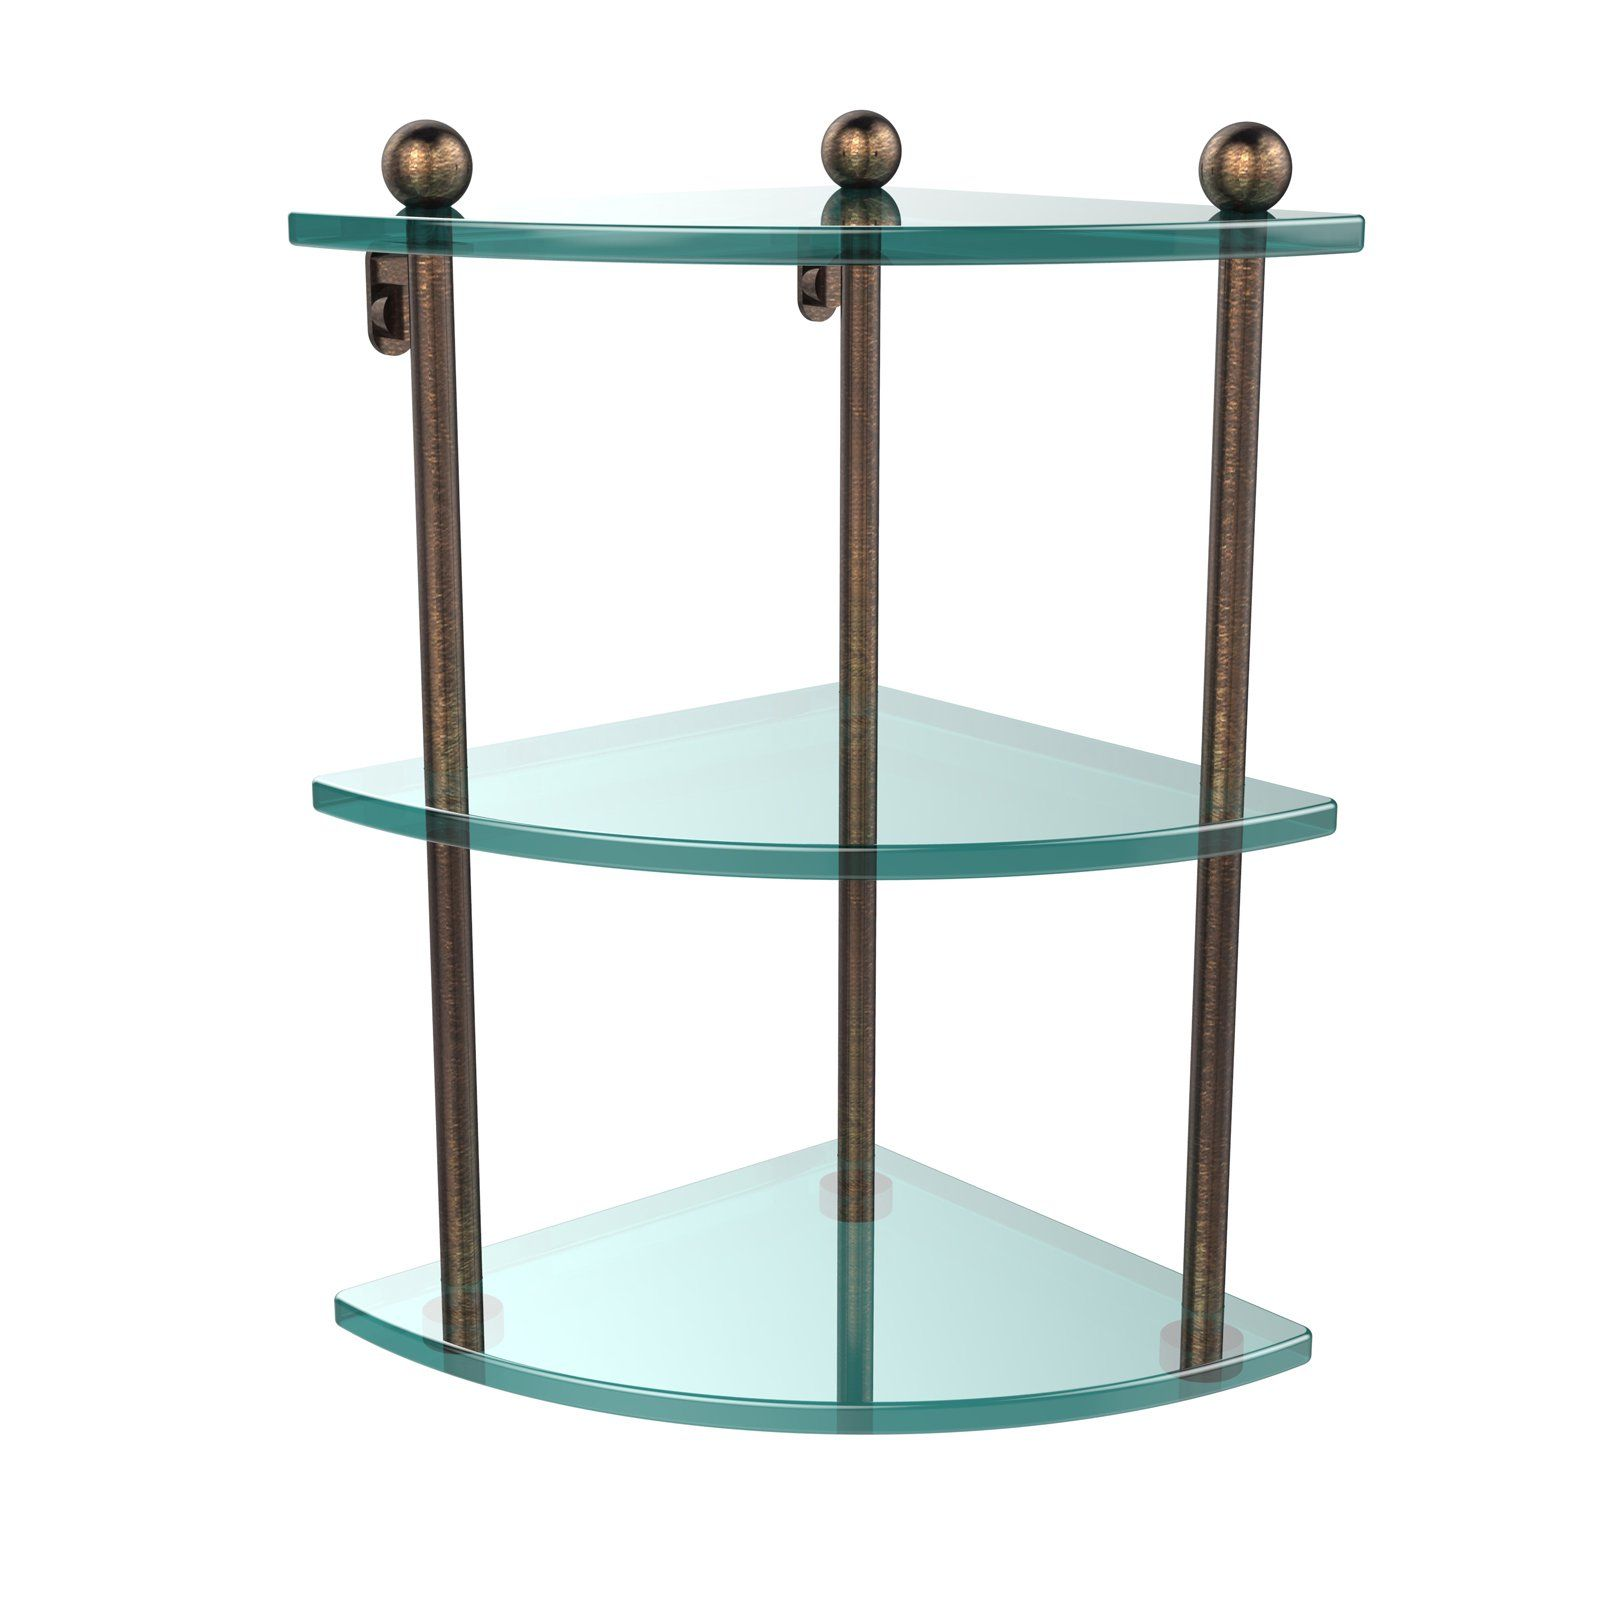 Allied Brass Three Tier Corner Glass Shelf Glass Corner Shelves Glass Bathroom Shelves Glass Shelves